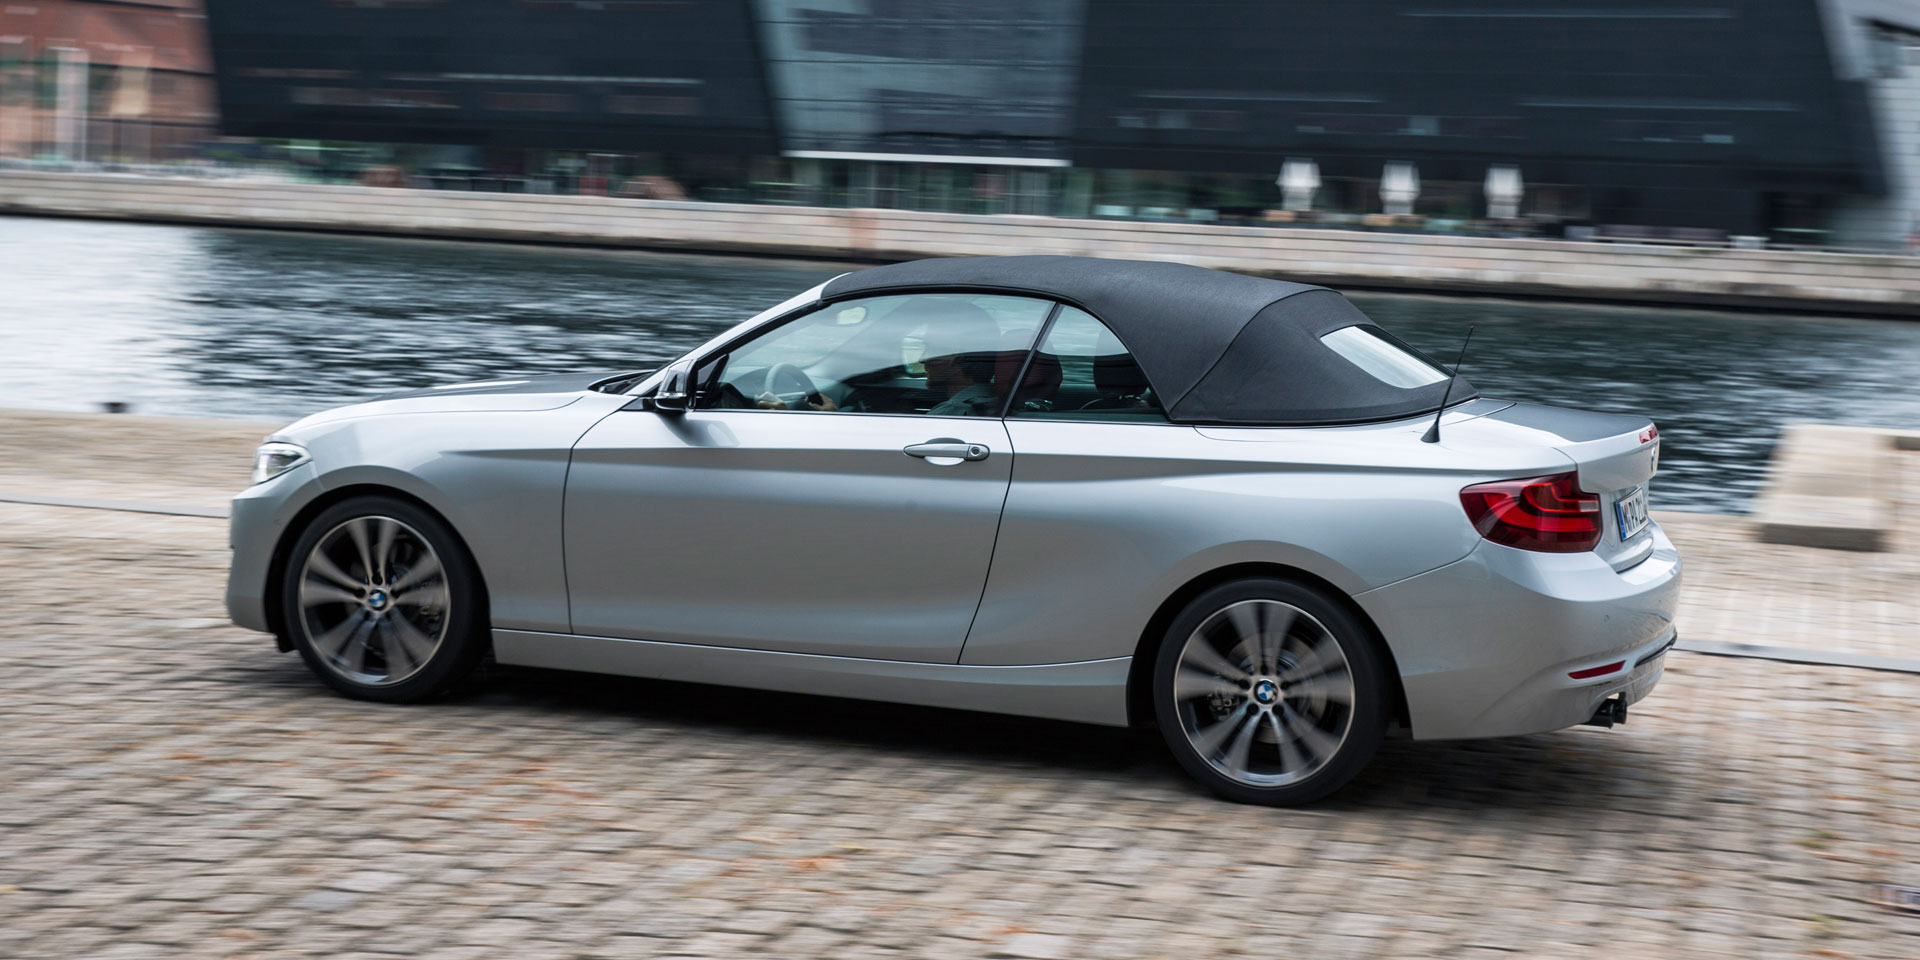 Used Cars For Sale New Cars For Sale Car Dealers Cars Chicago - 2015 convertible bmw